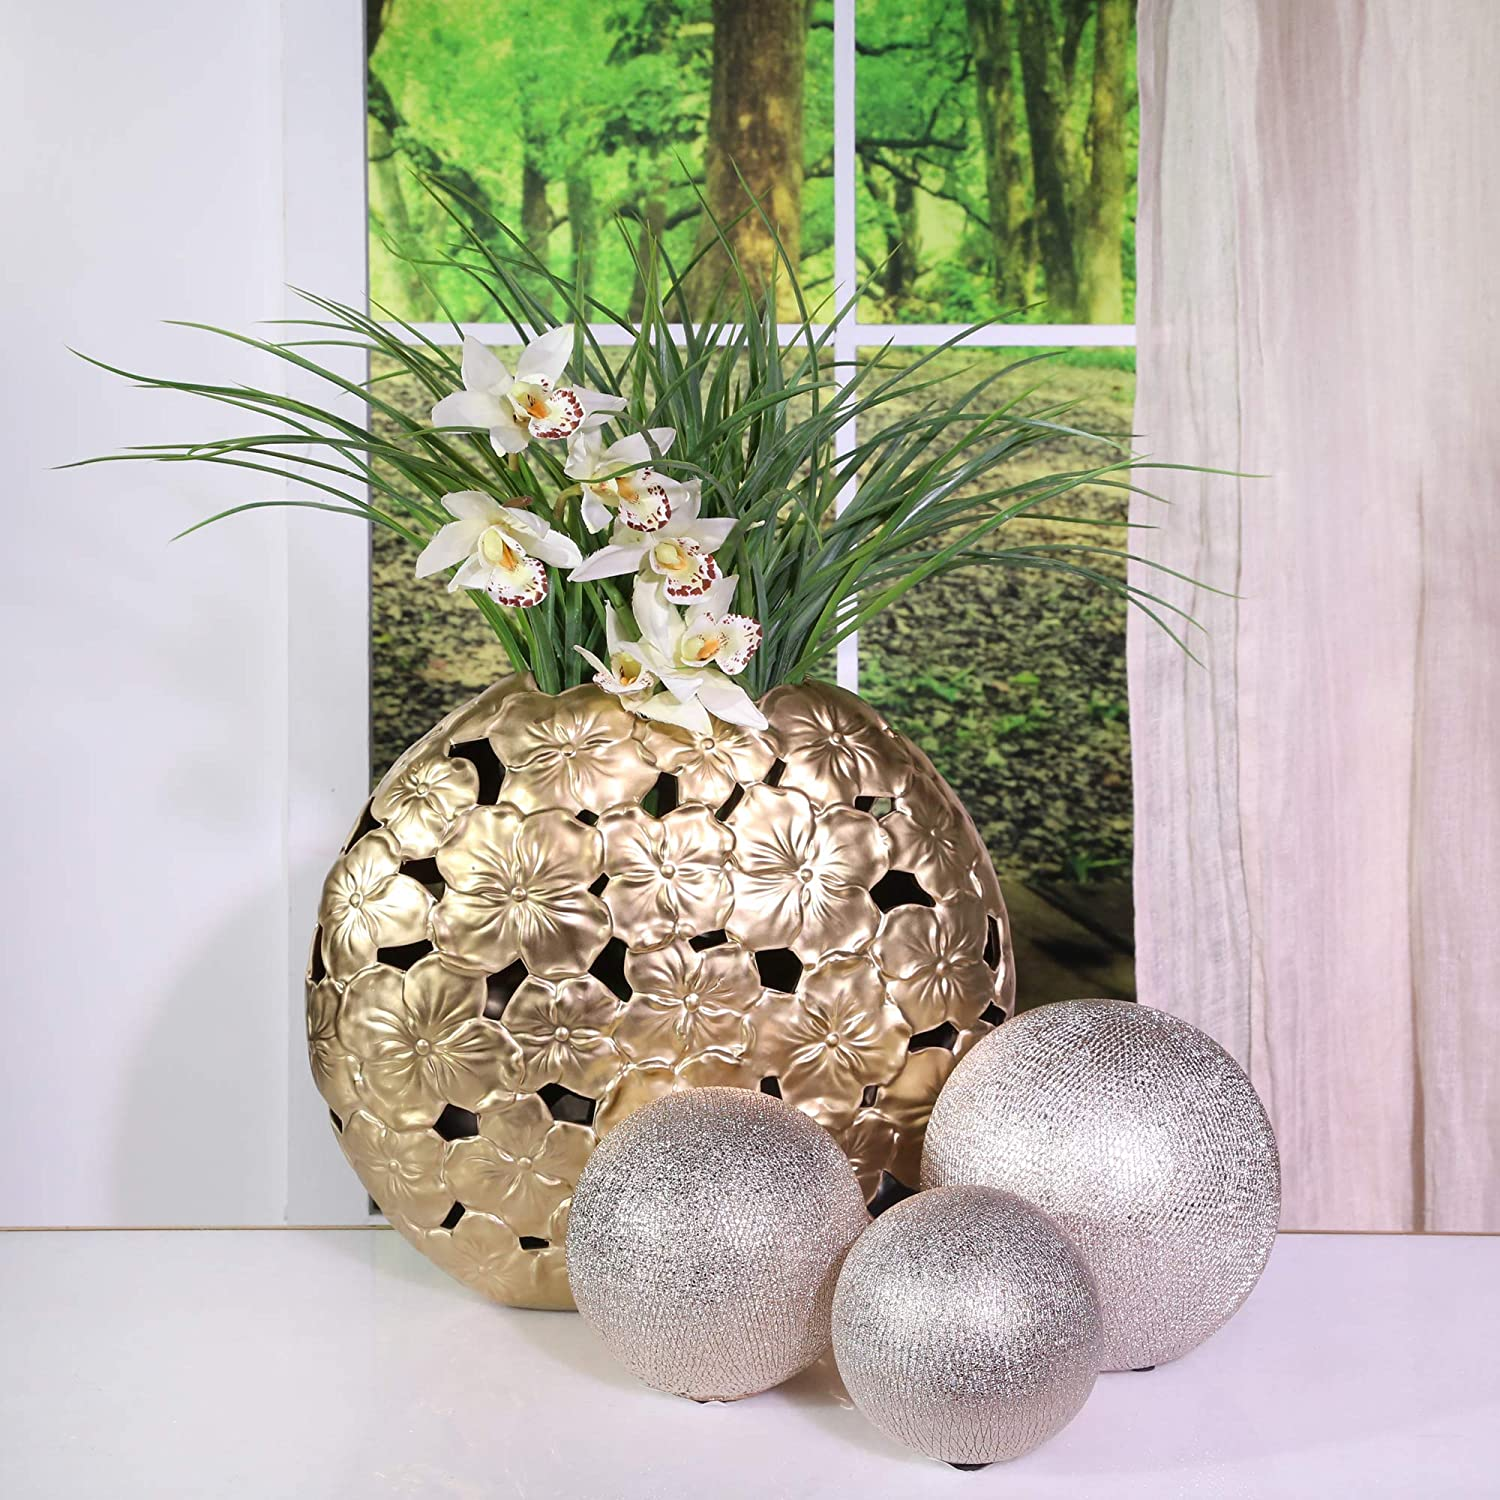 Silver Sagebrook Home 13826-12 Ceramic 6//5//4 Orbs Champagne Set of 3 6 x 6 x 6 inches